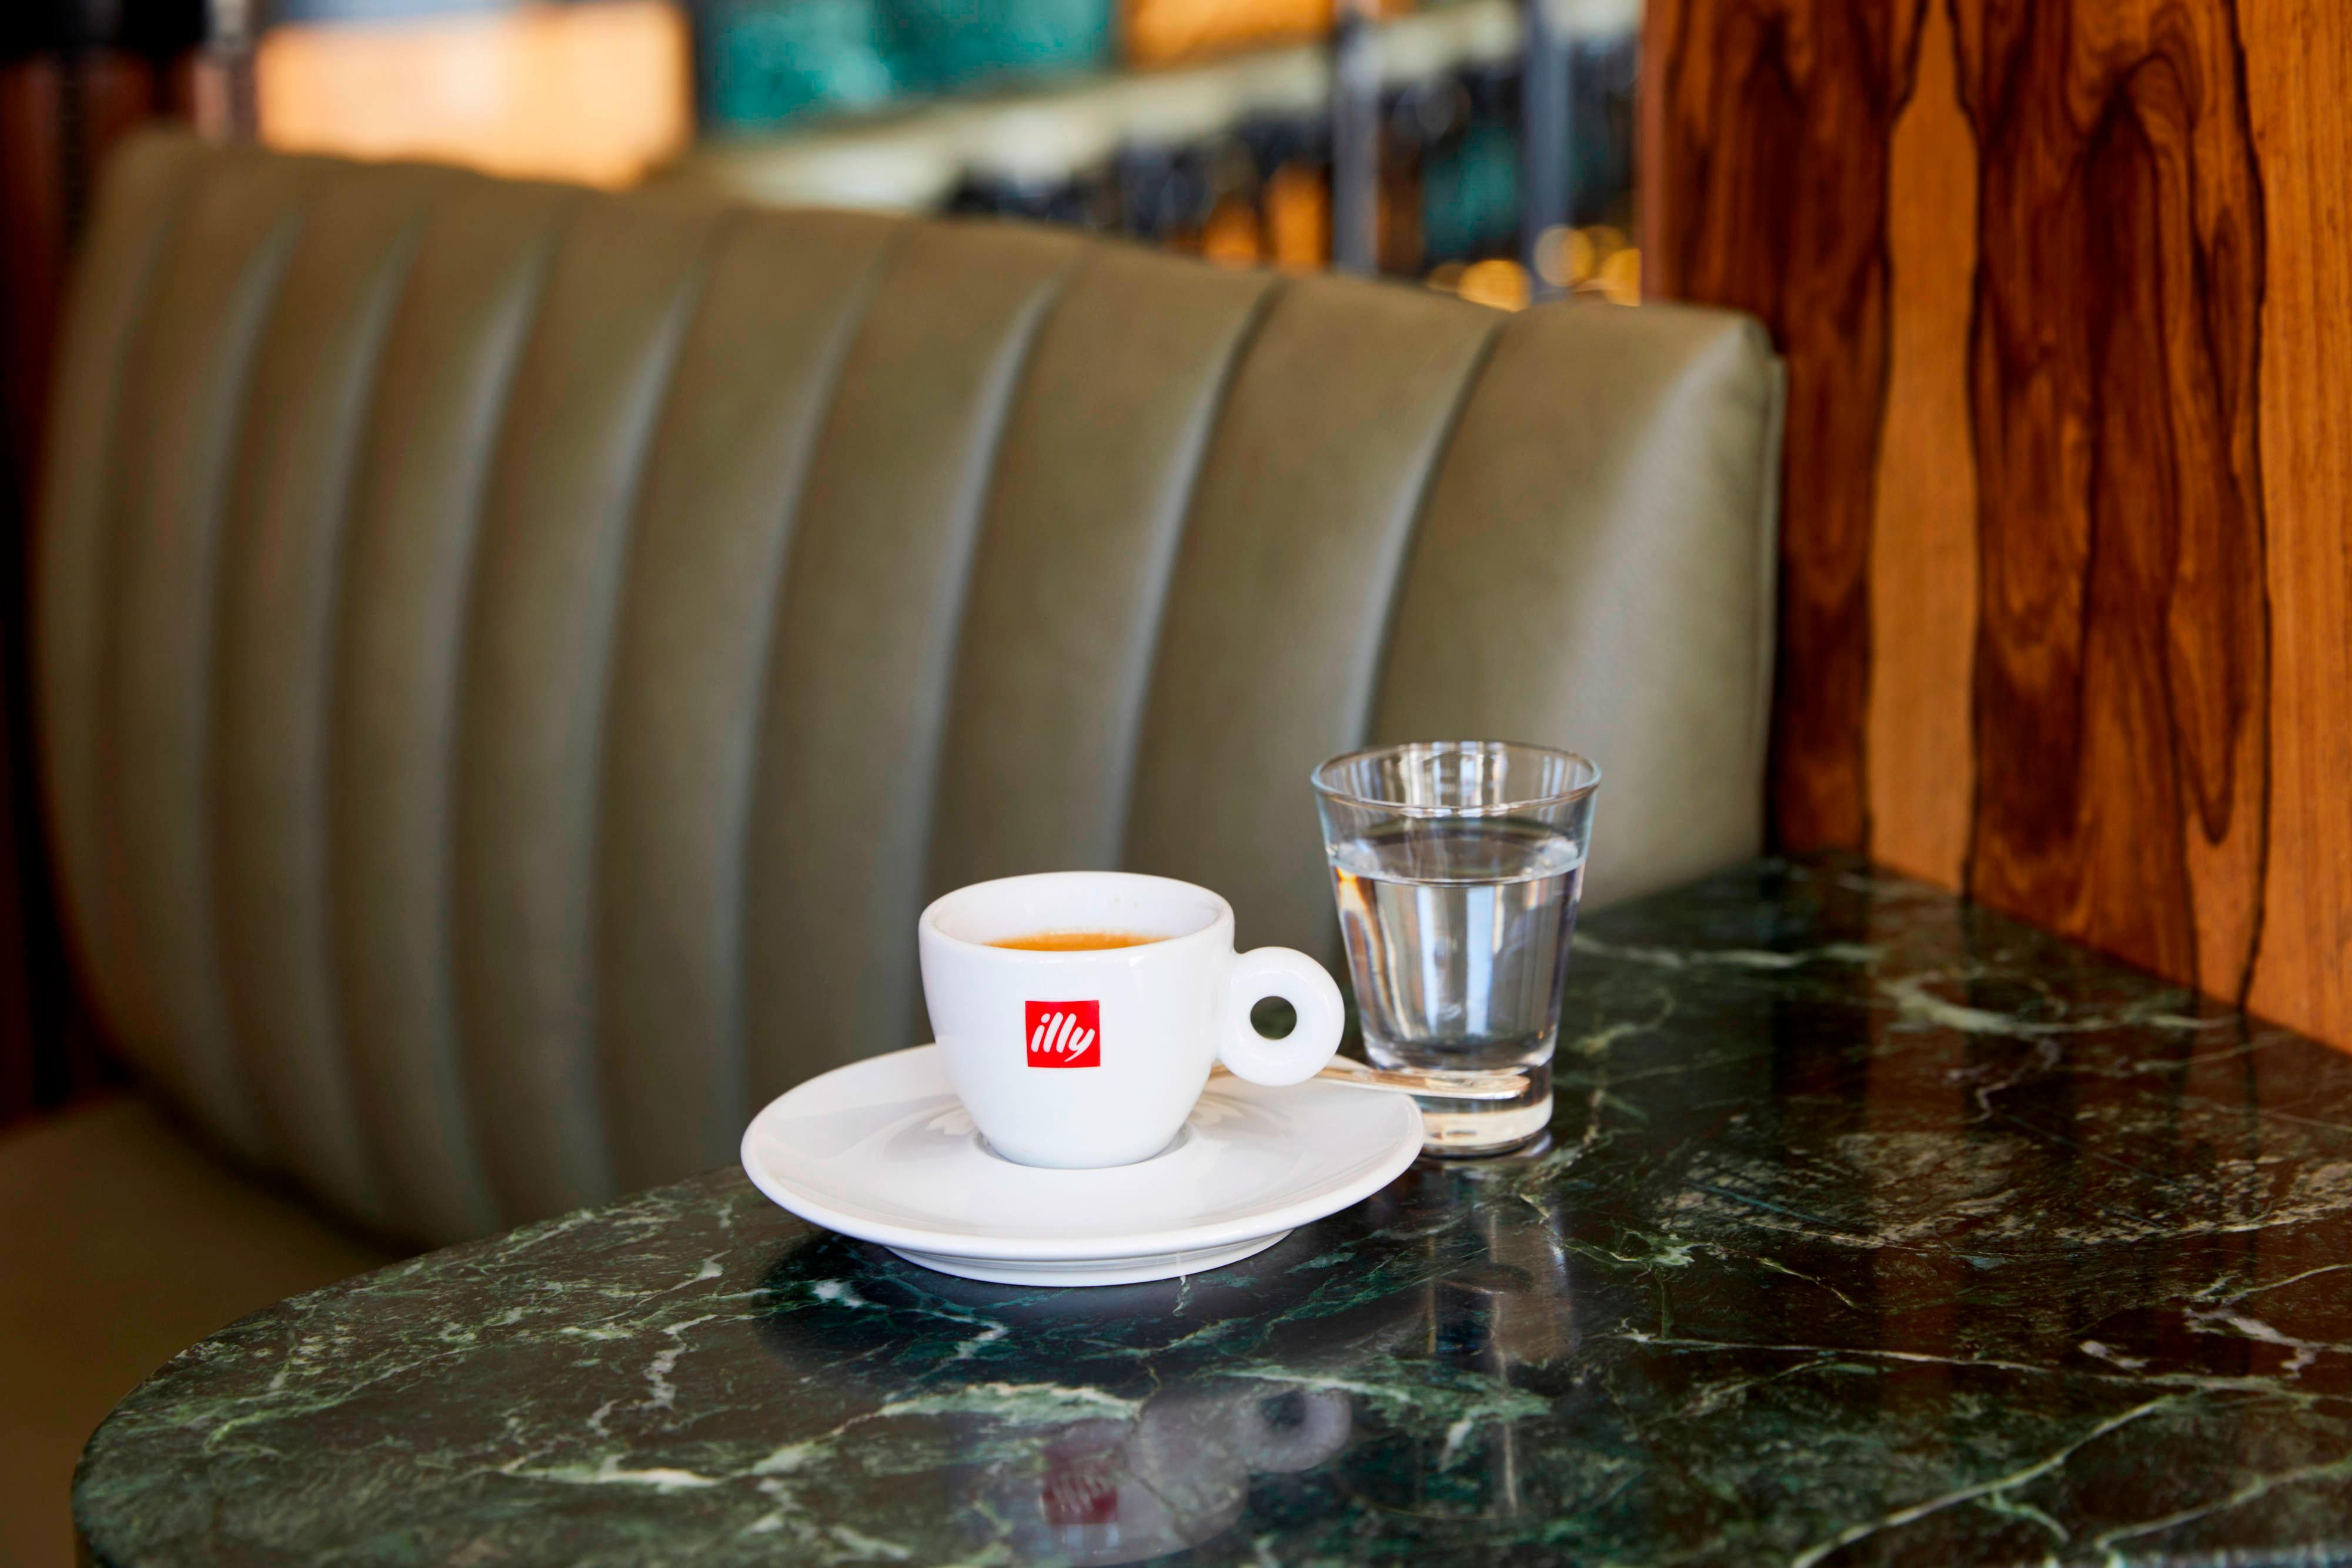 Illy coffee culture